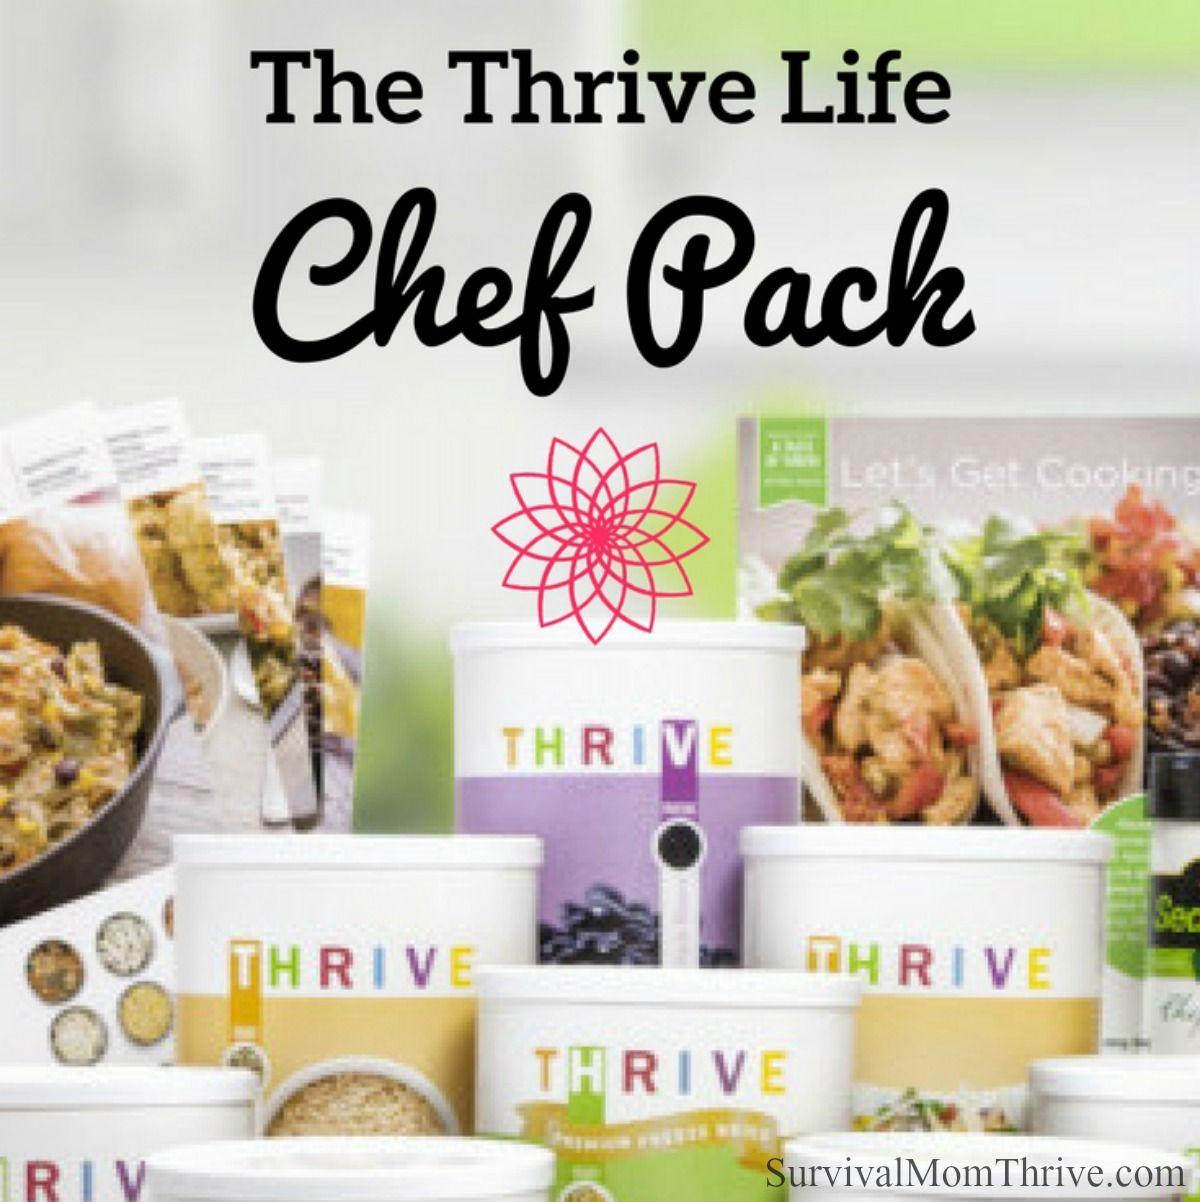 thrive life reviews, thrive life review chef pack, thrive life foods, thrive life freeze dried food